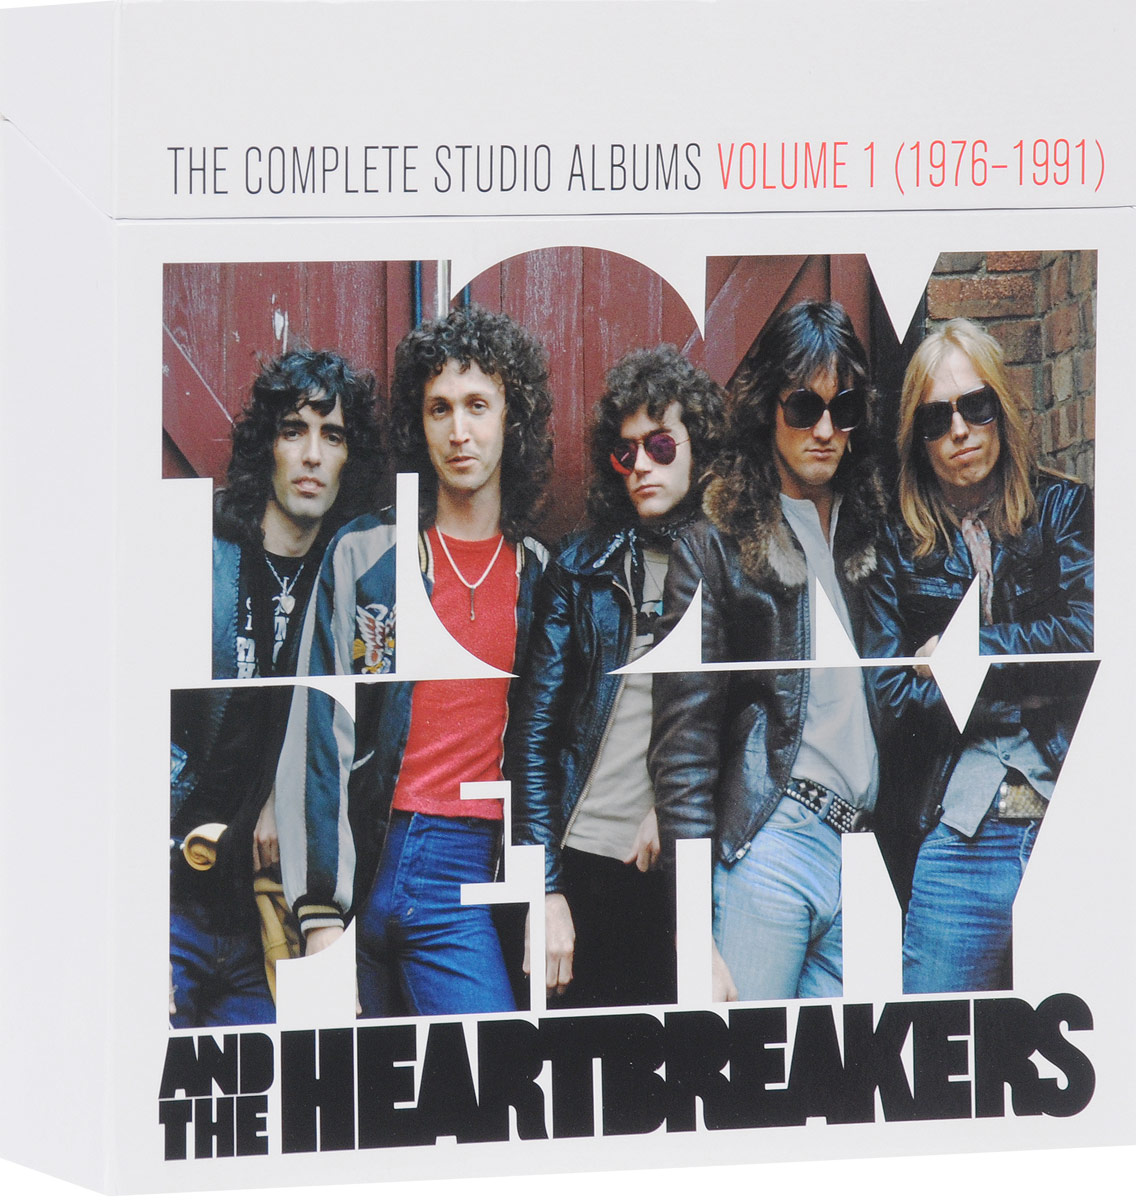 Том Петти,The Heartbreakers Tom Petty And The Heartbreakers. The Complete Studio Albums. Volume 1. (1976-1991) (9 LP) 1 2